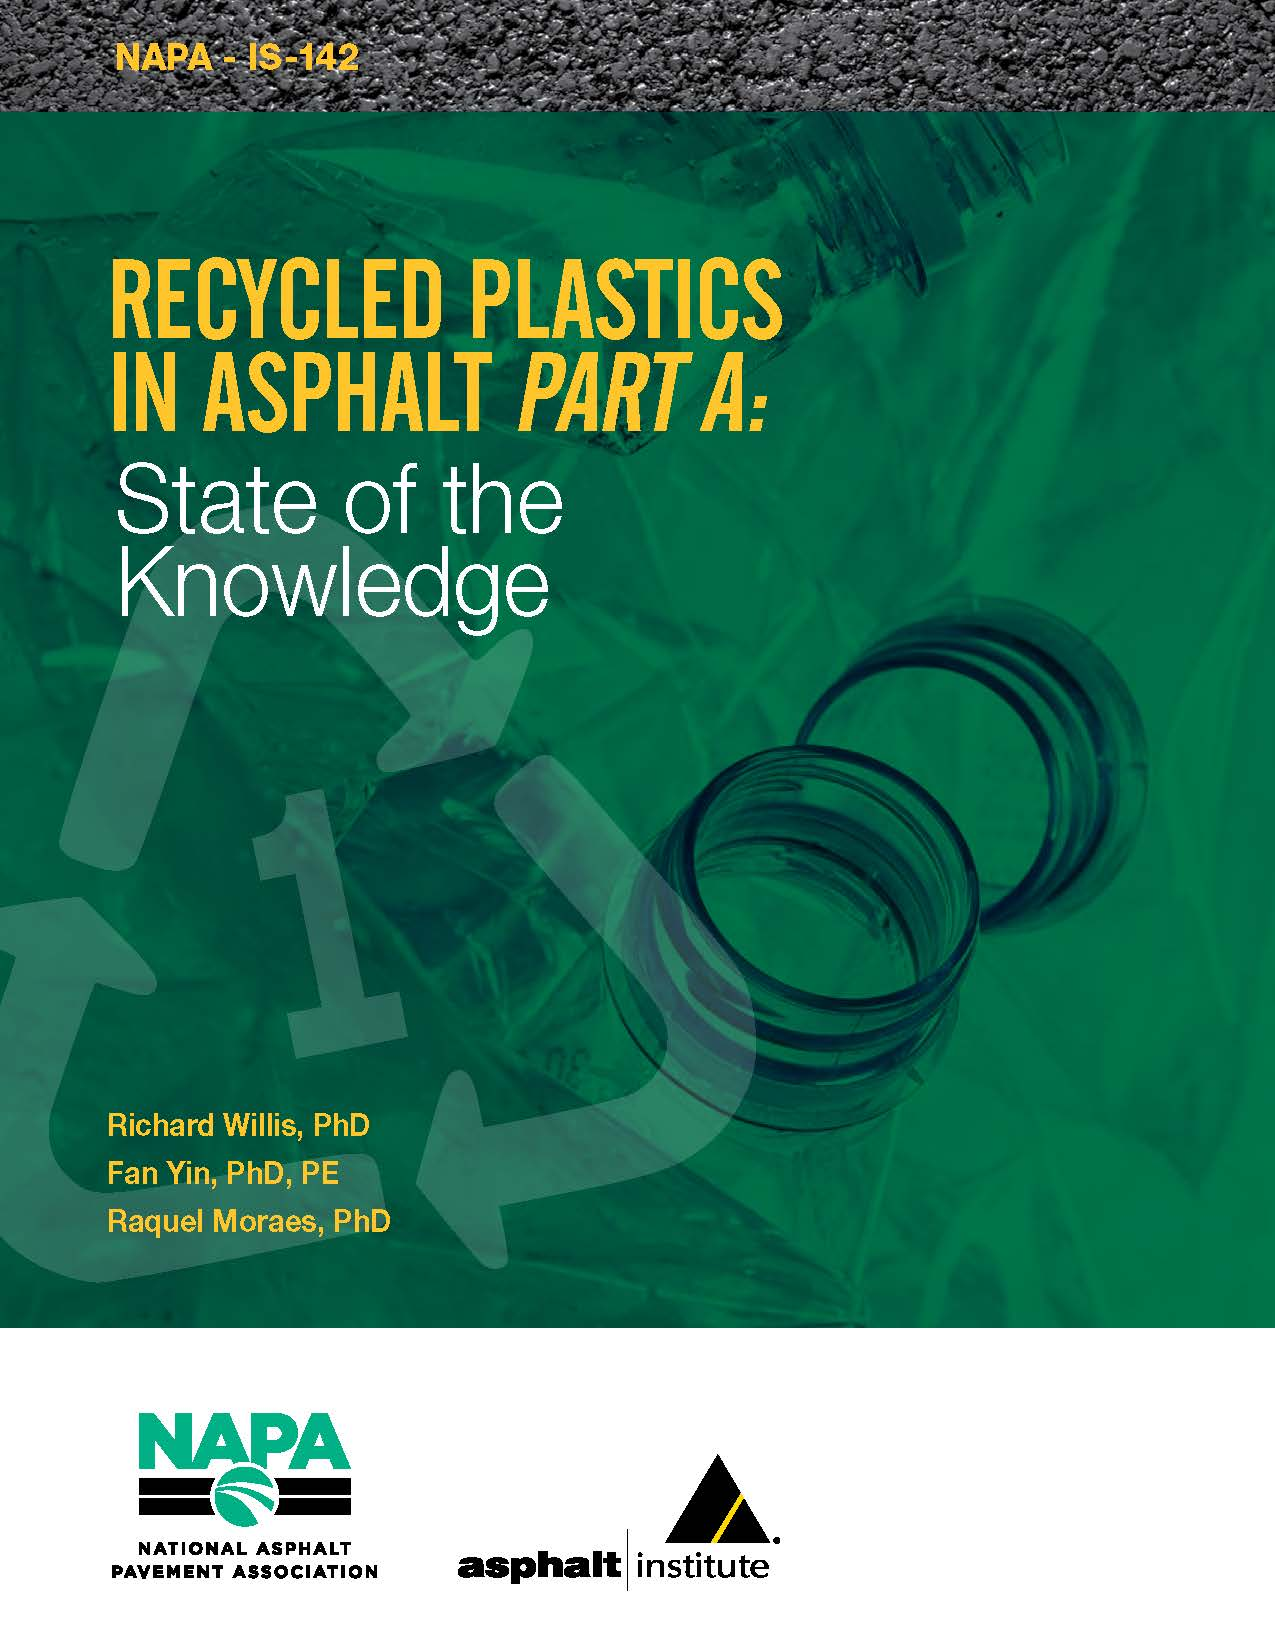 Recycled Plastics in Asphalt Part A: State of the Knowledge